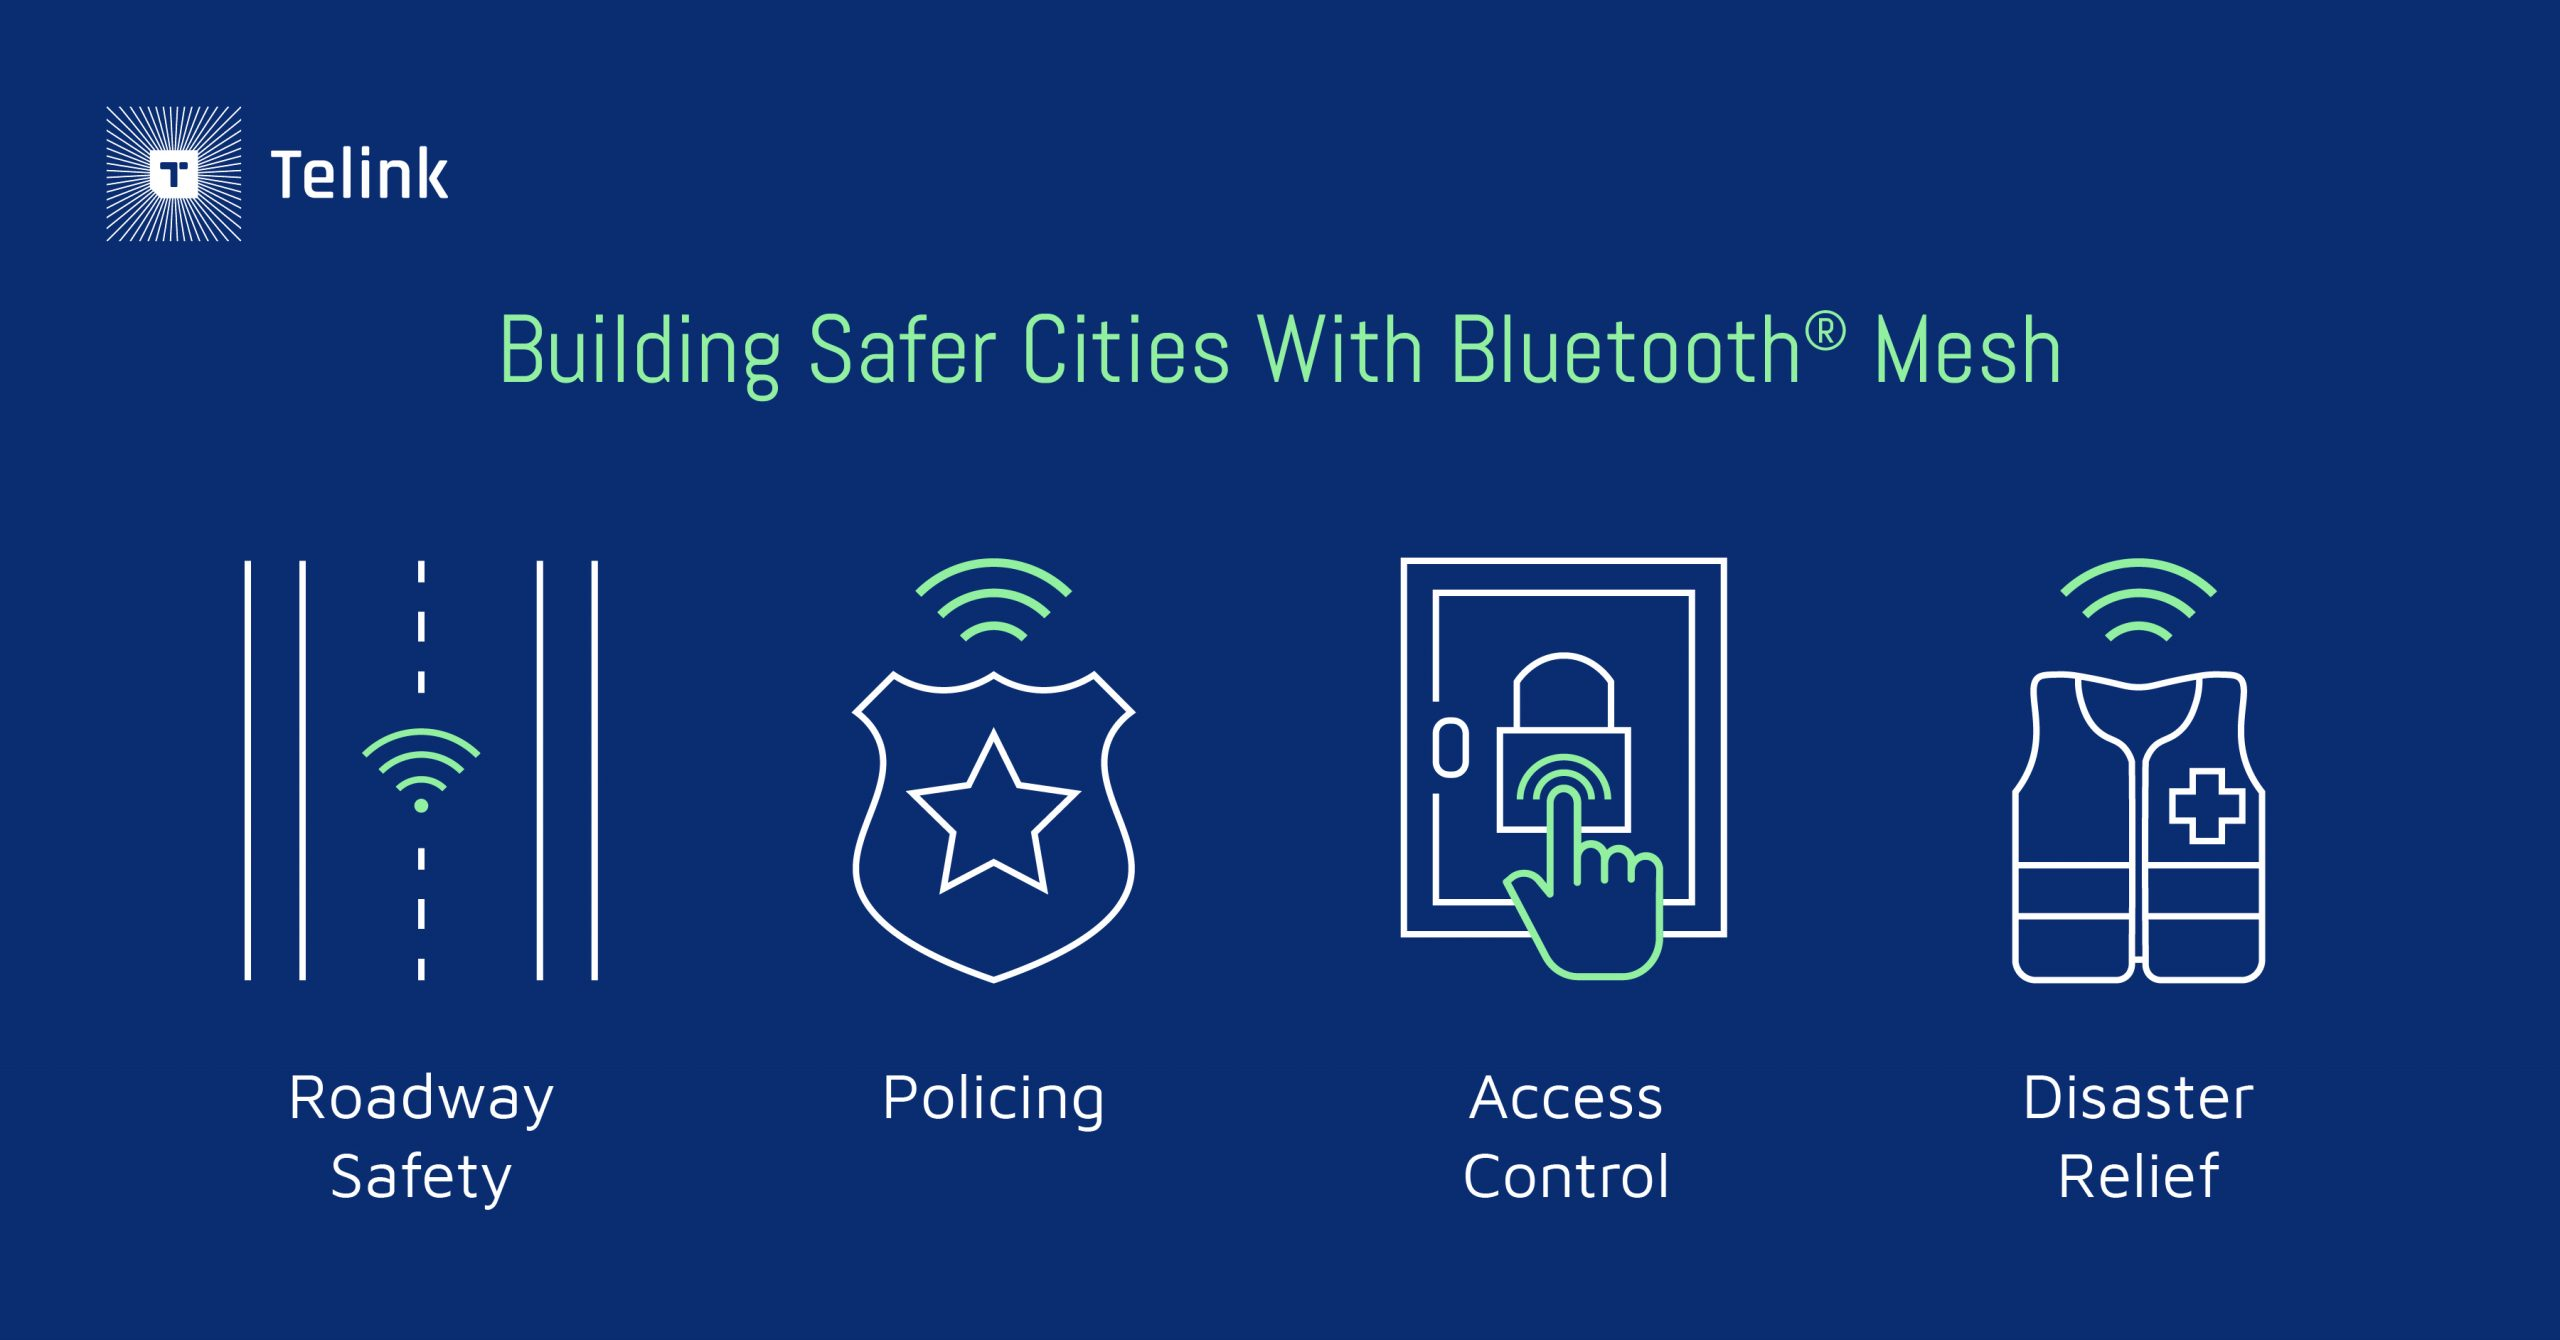 Building safer cities with Bluetooth Mesh